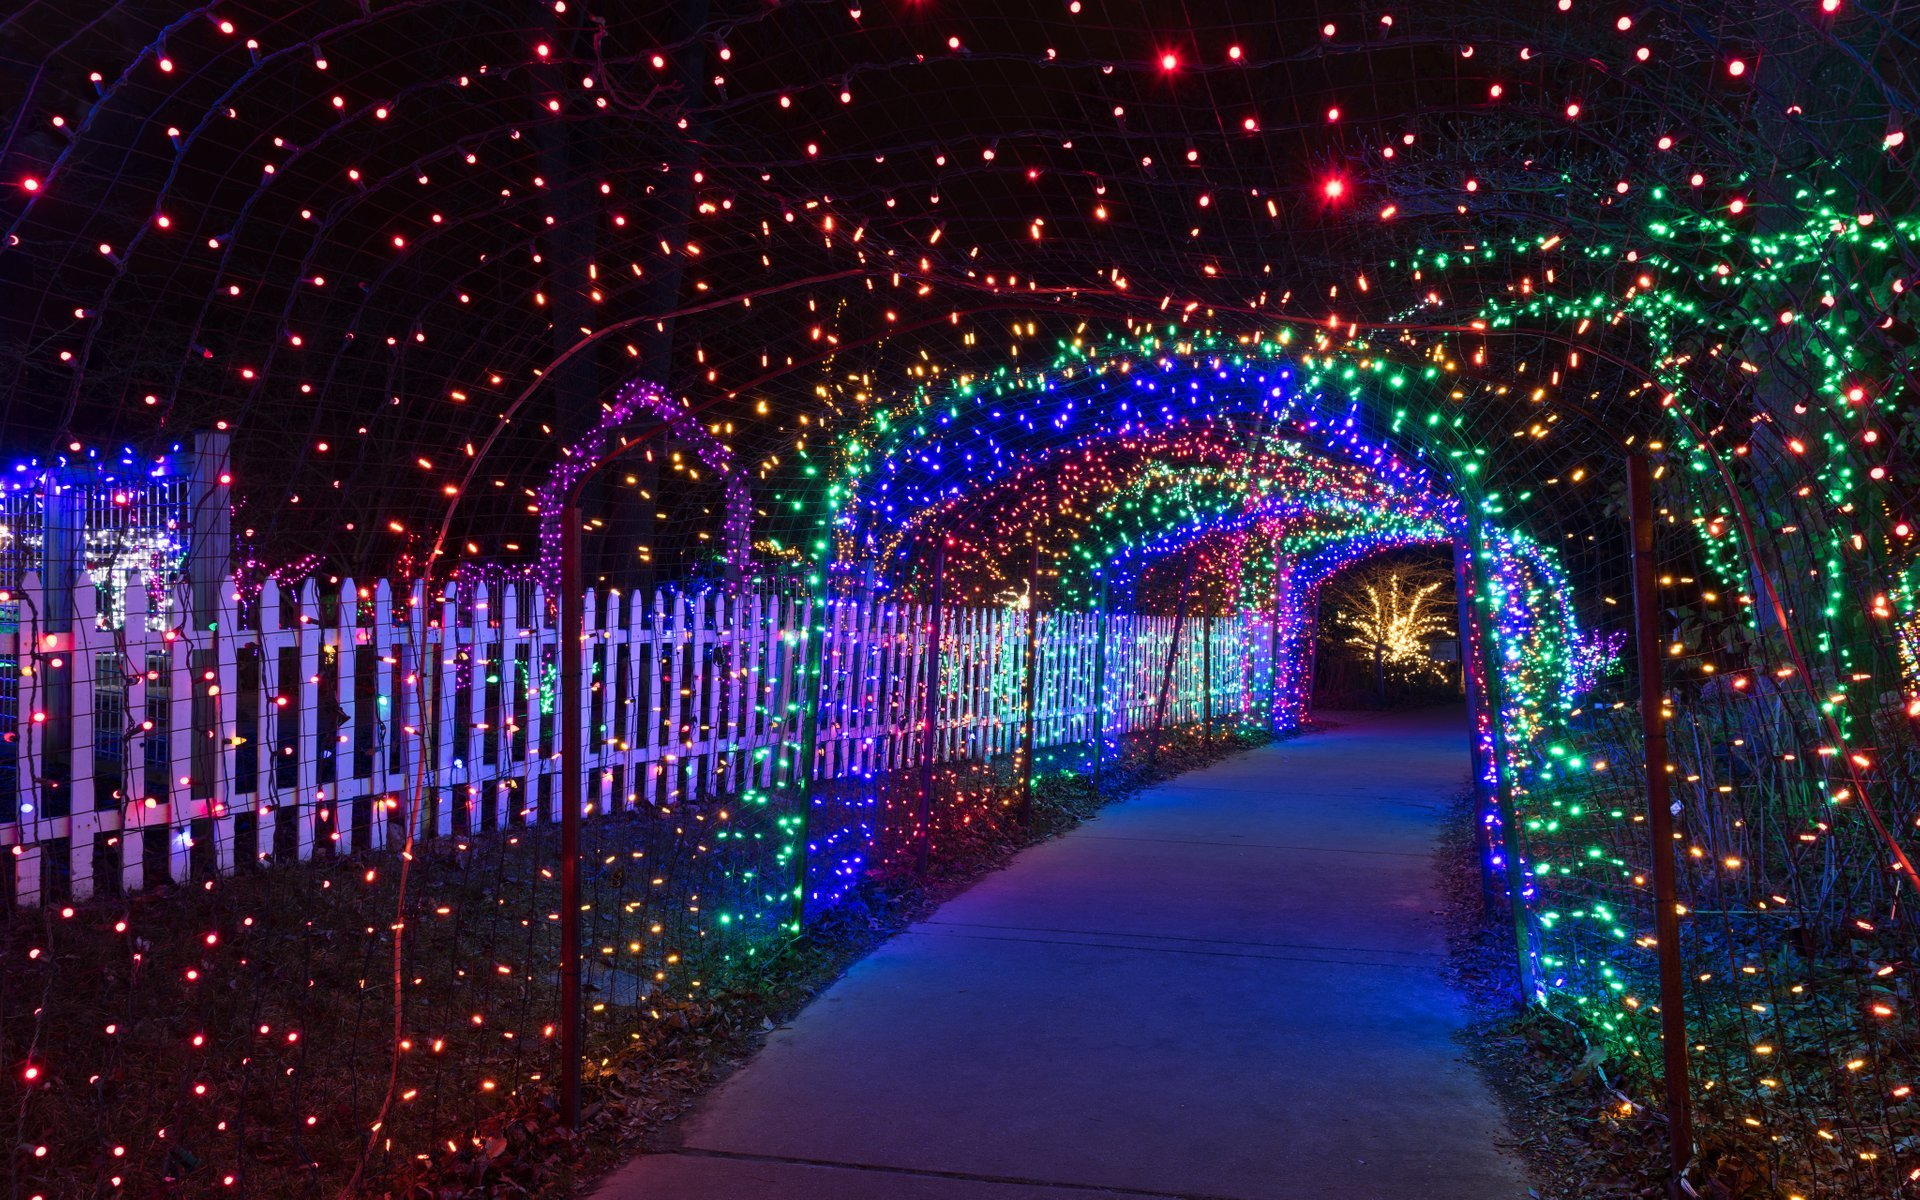 The entrance to Brookside Garden's light display 2020